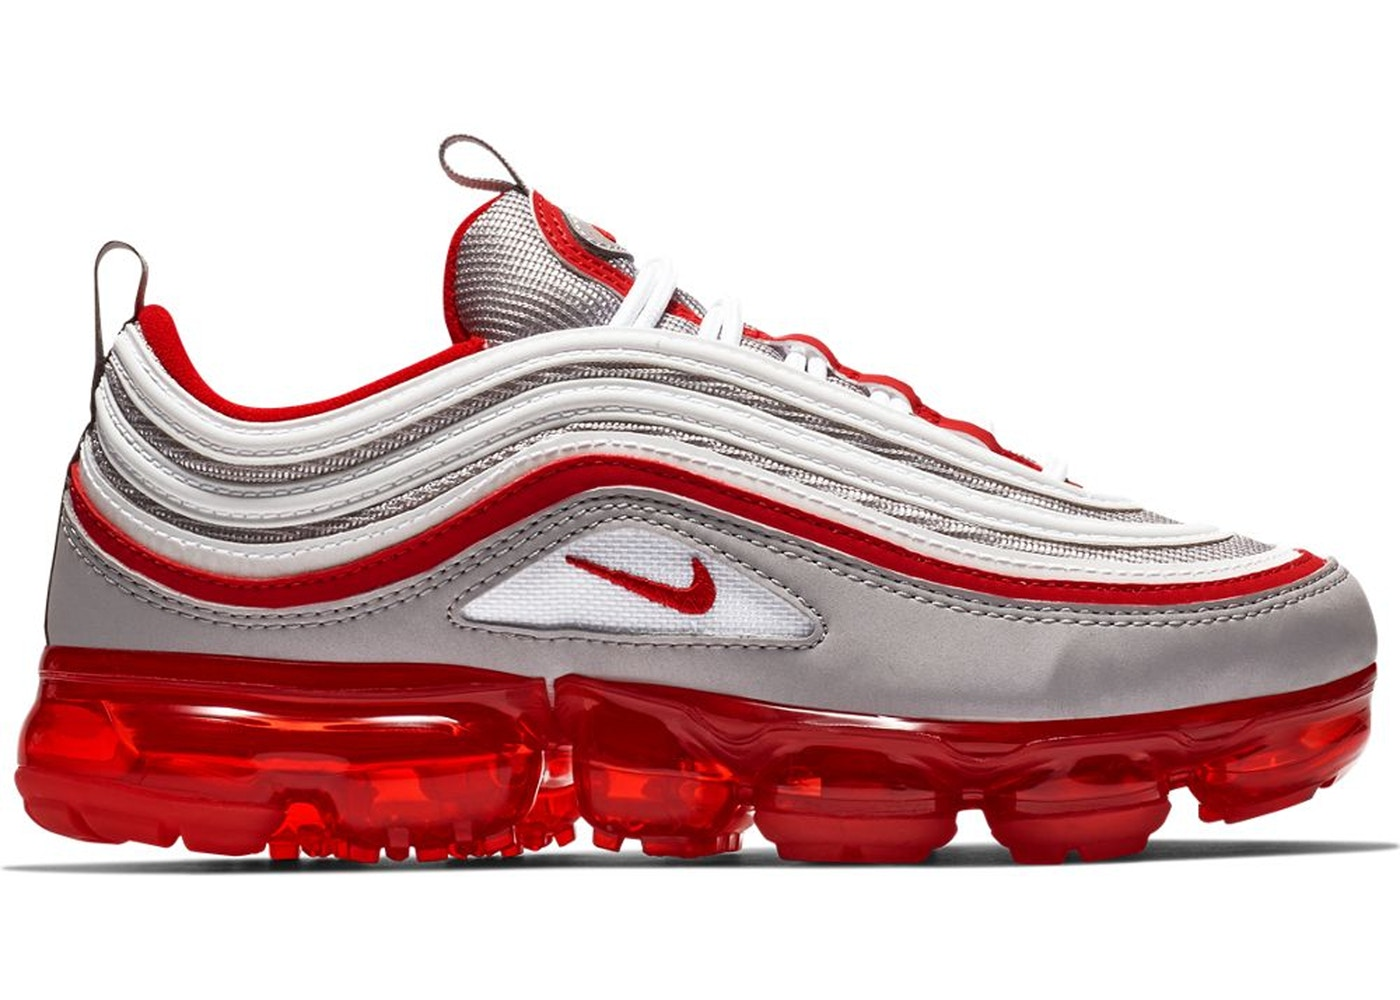 reputable site 8c9f7 a4dc3 Air VaporMax 97 Atmosphere Grey University Red (GS)